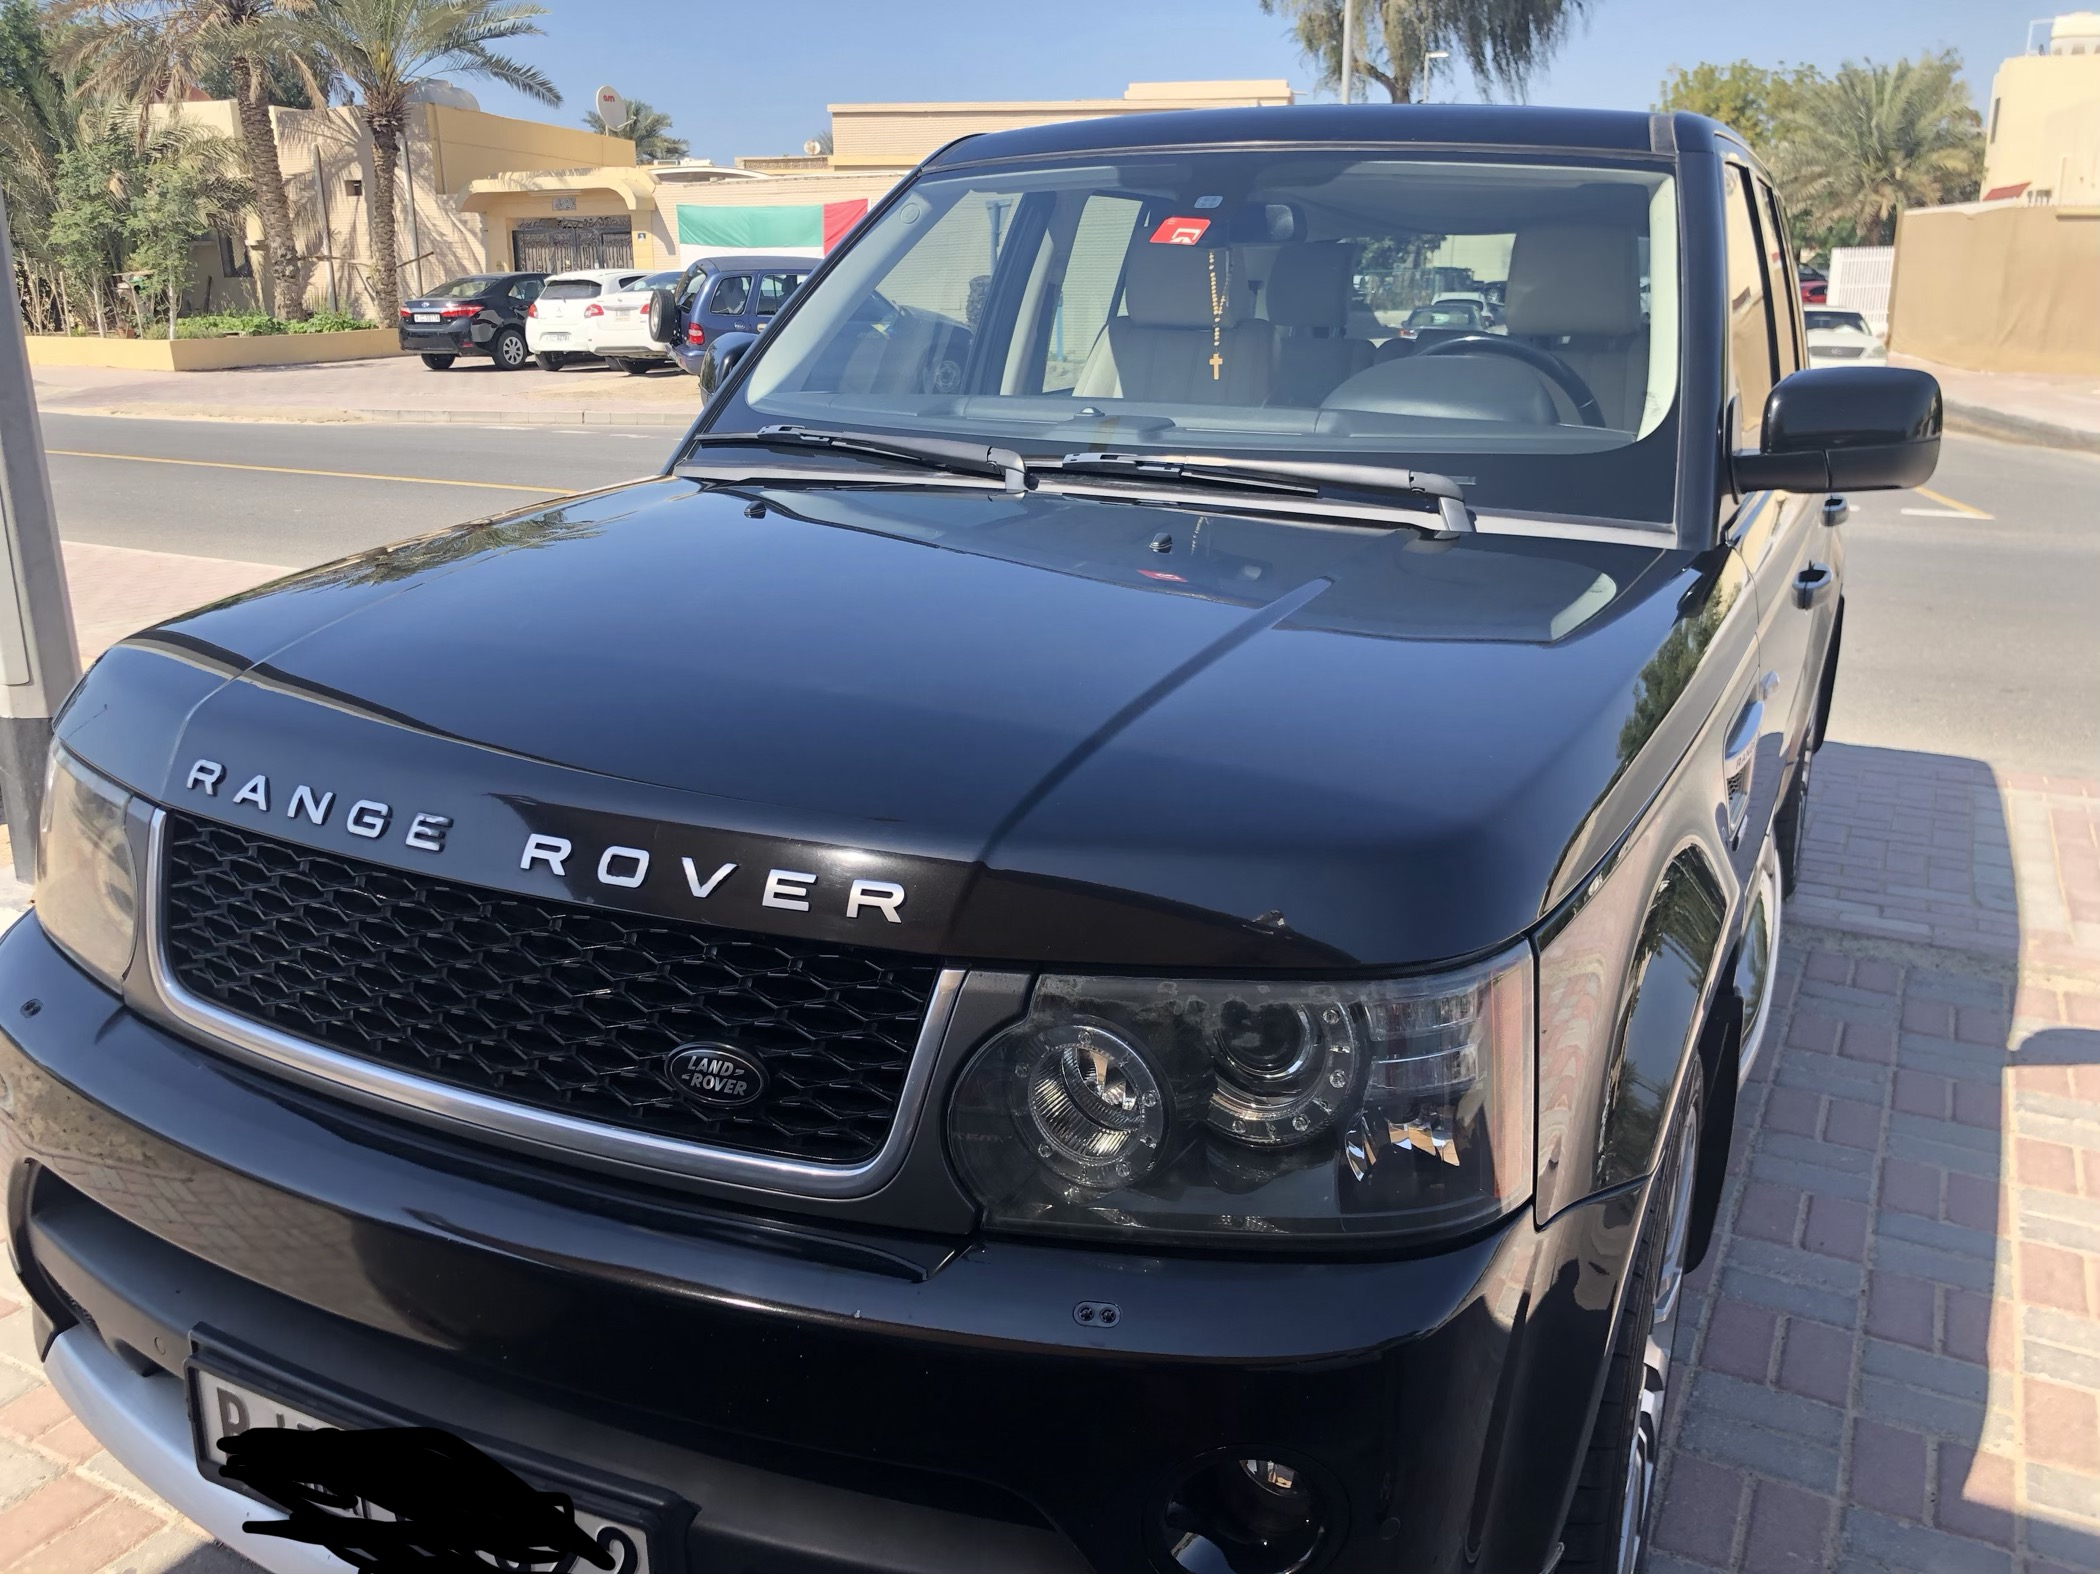 range-rover-for-sale